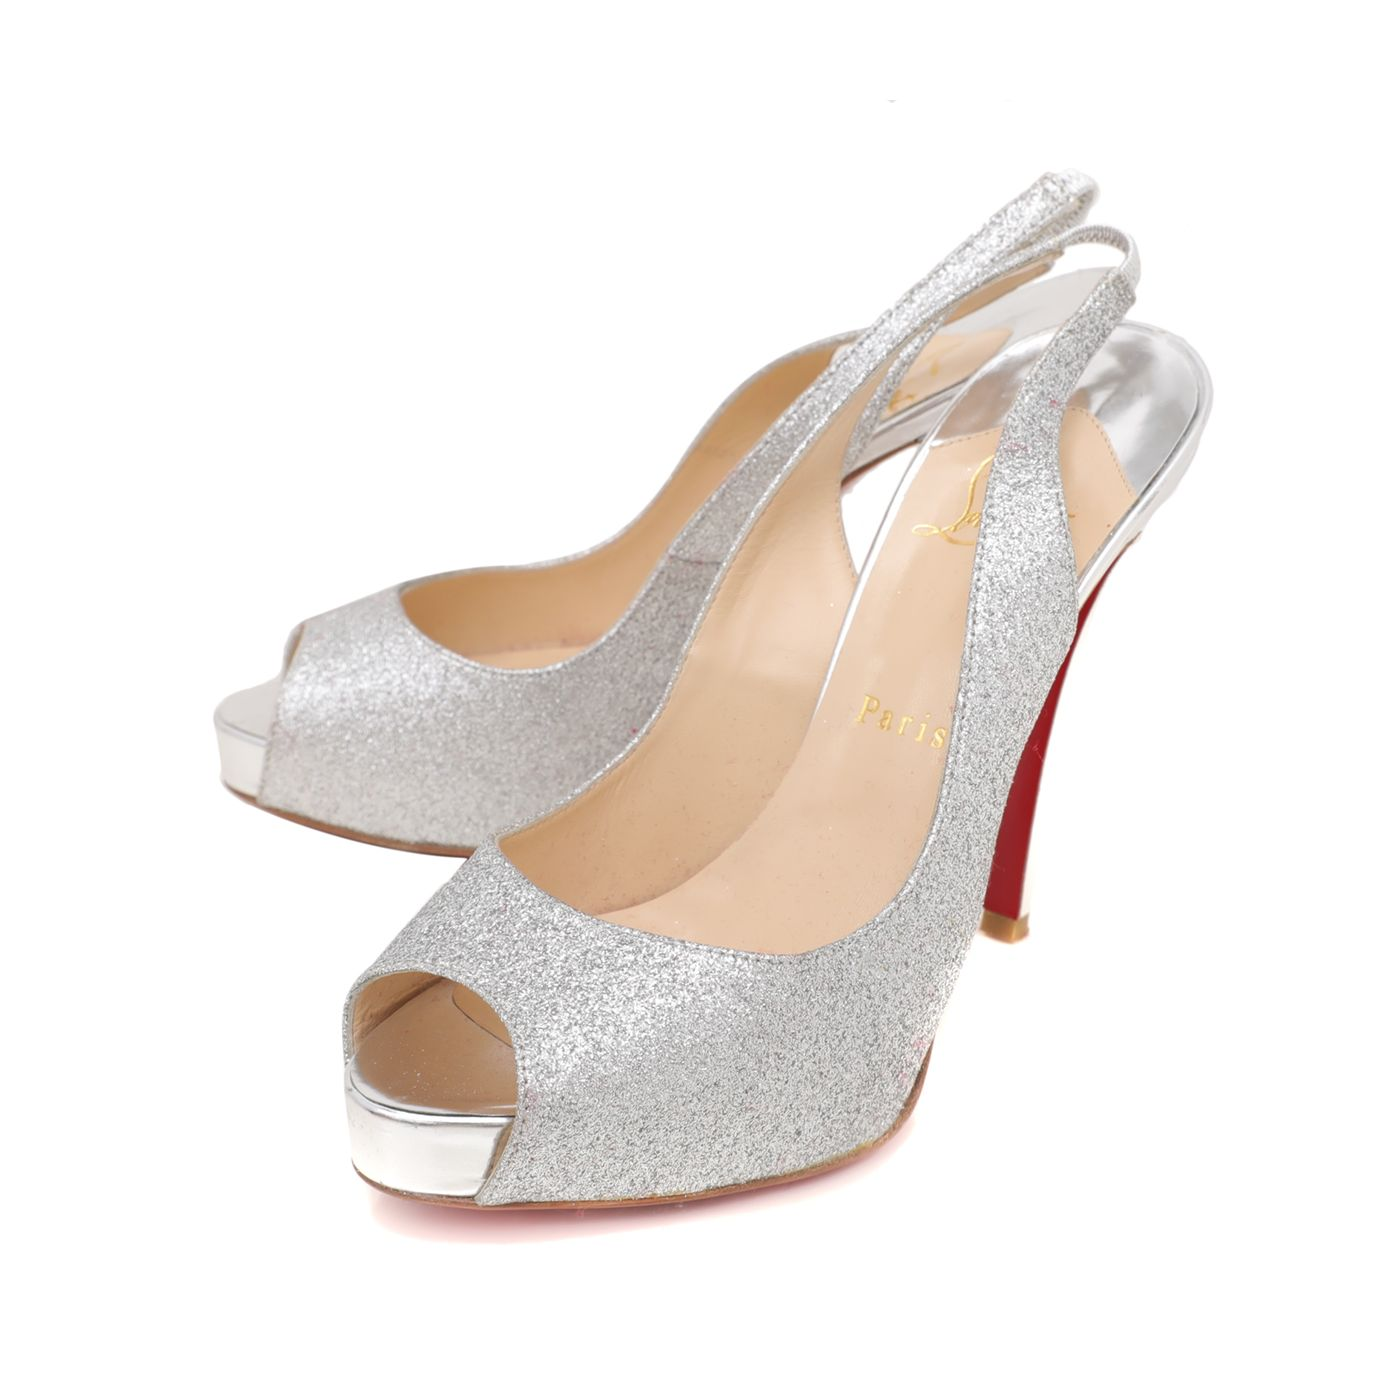 Christian Louboutin Silver Glitter No Prive 120 Slingback Pumps 38.5